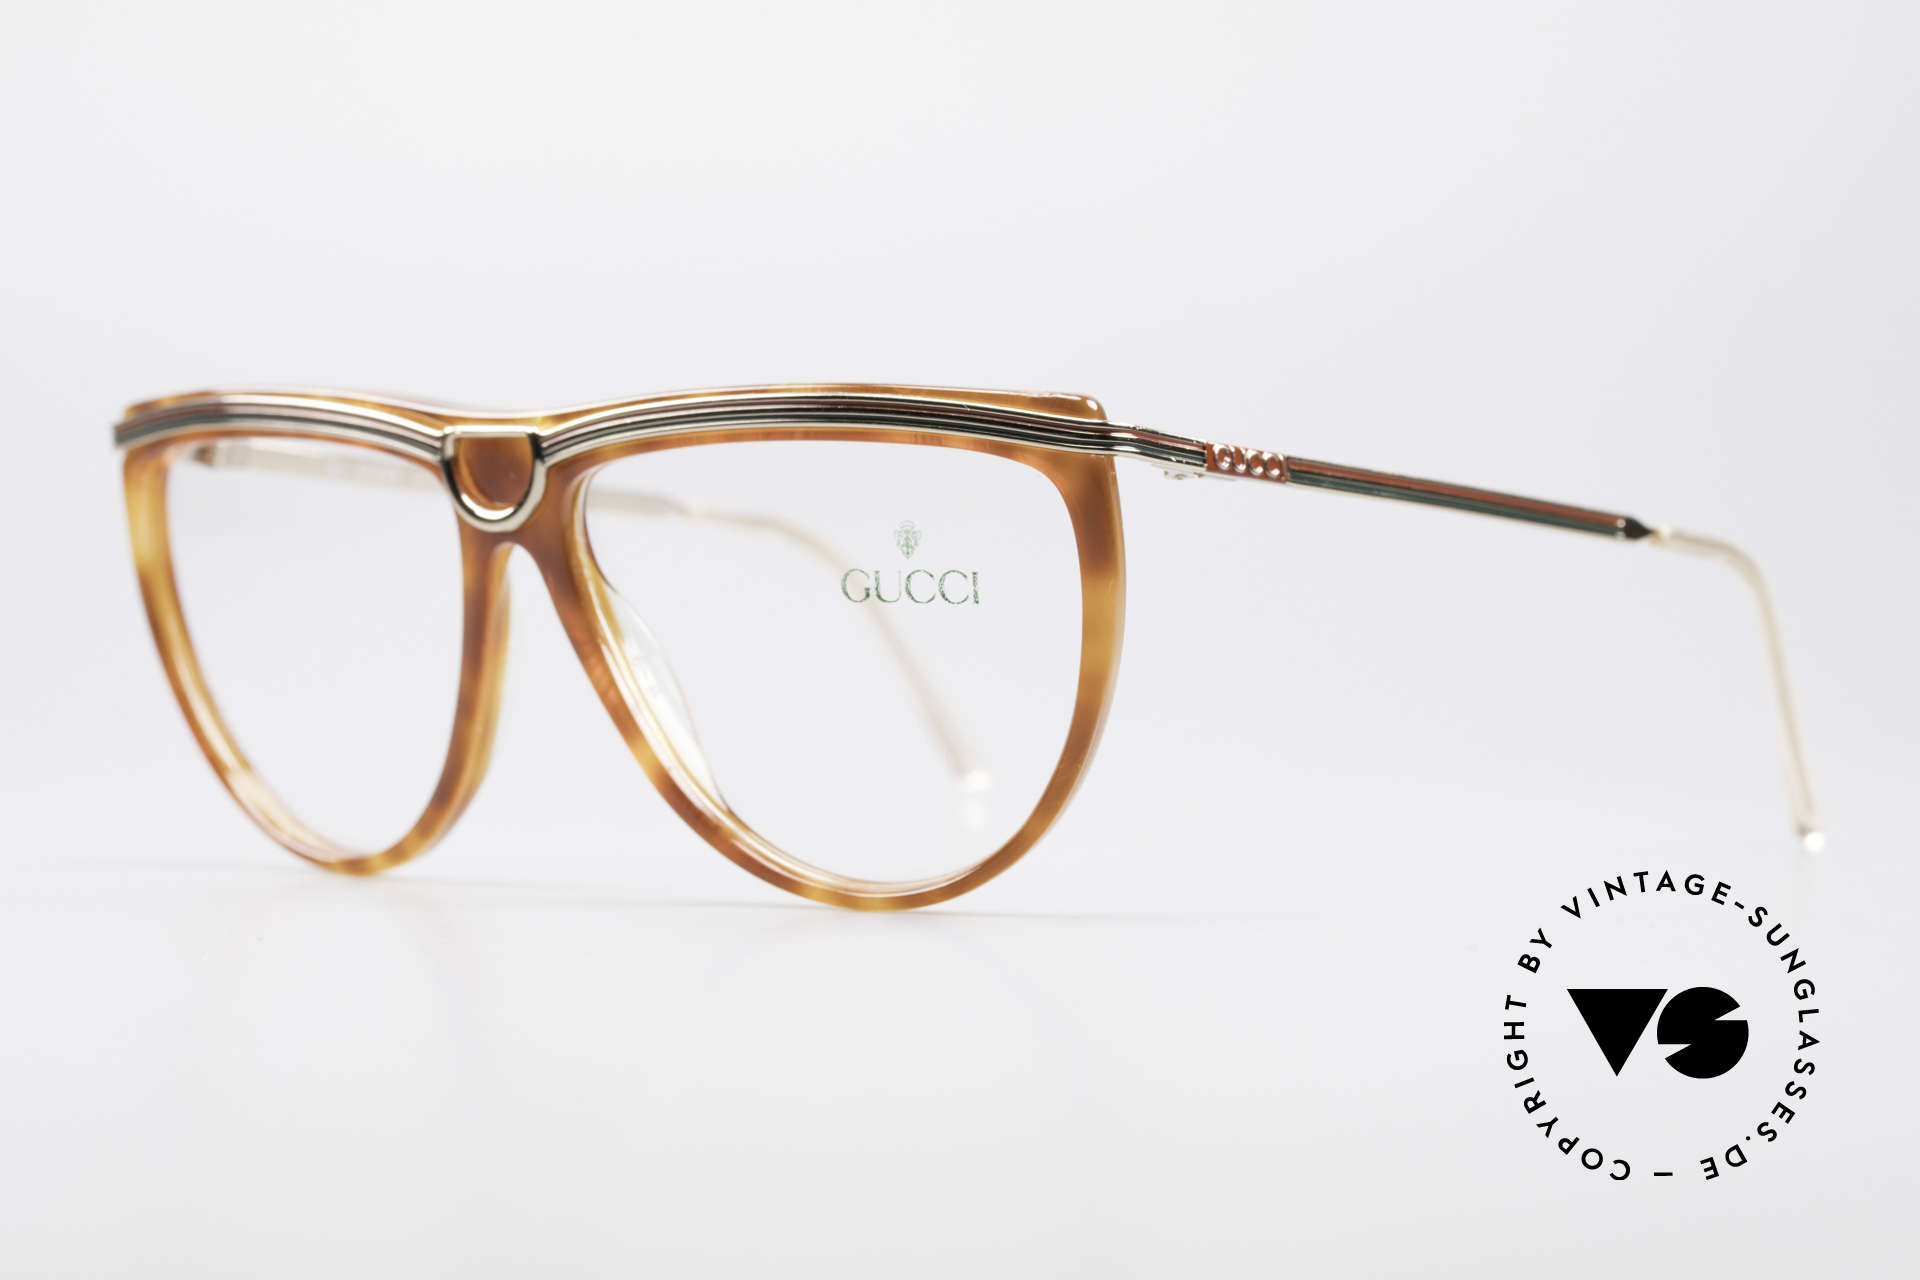 Gucci 2303 Ladies Eyeglasses 80's, typical 80s Gucci design with stirrup shaped bridge, Made for Women